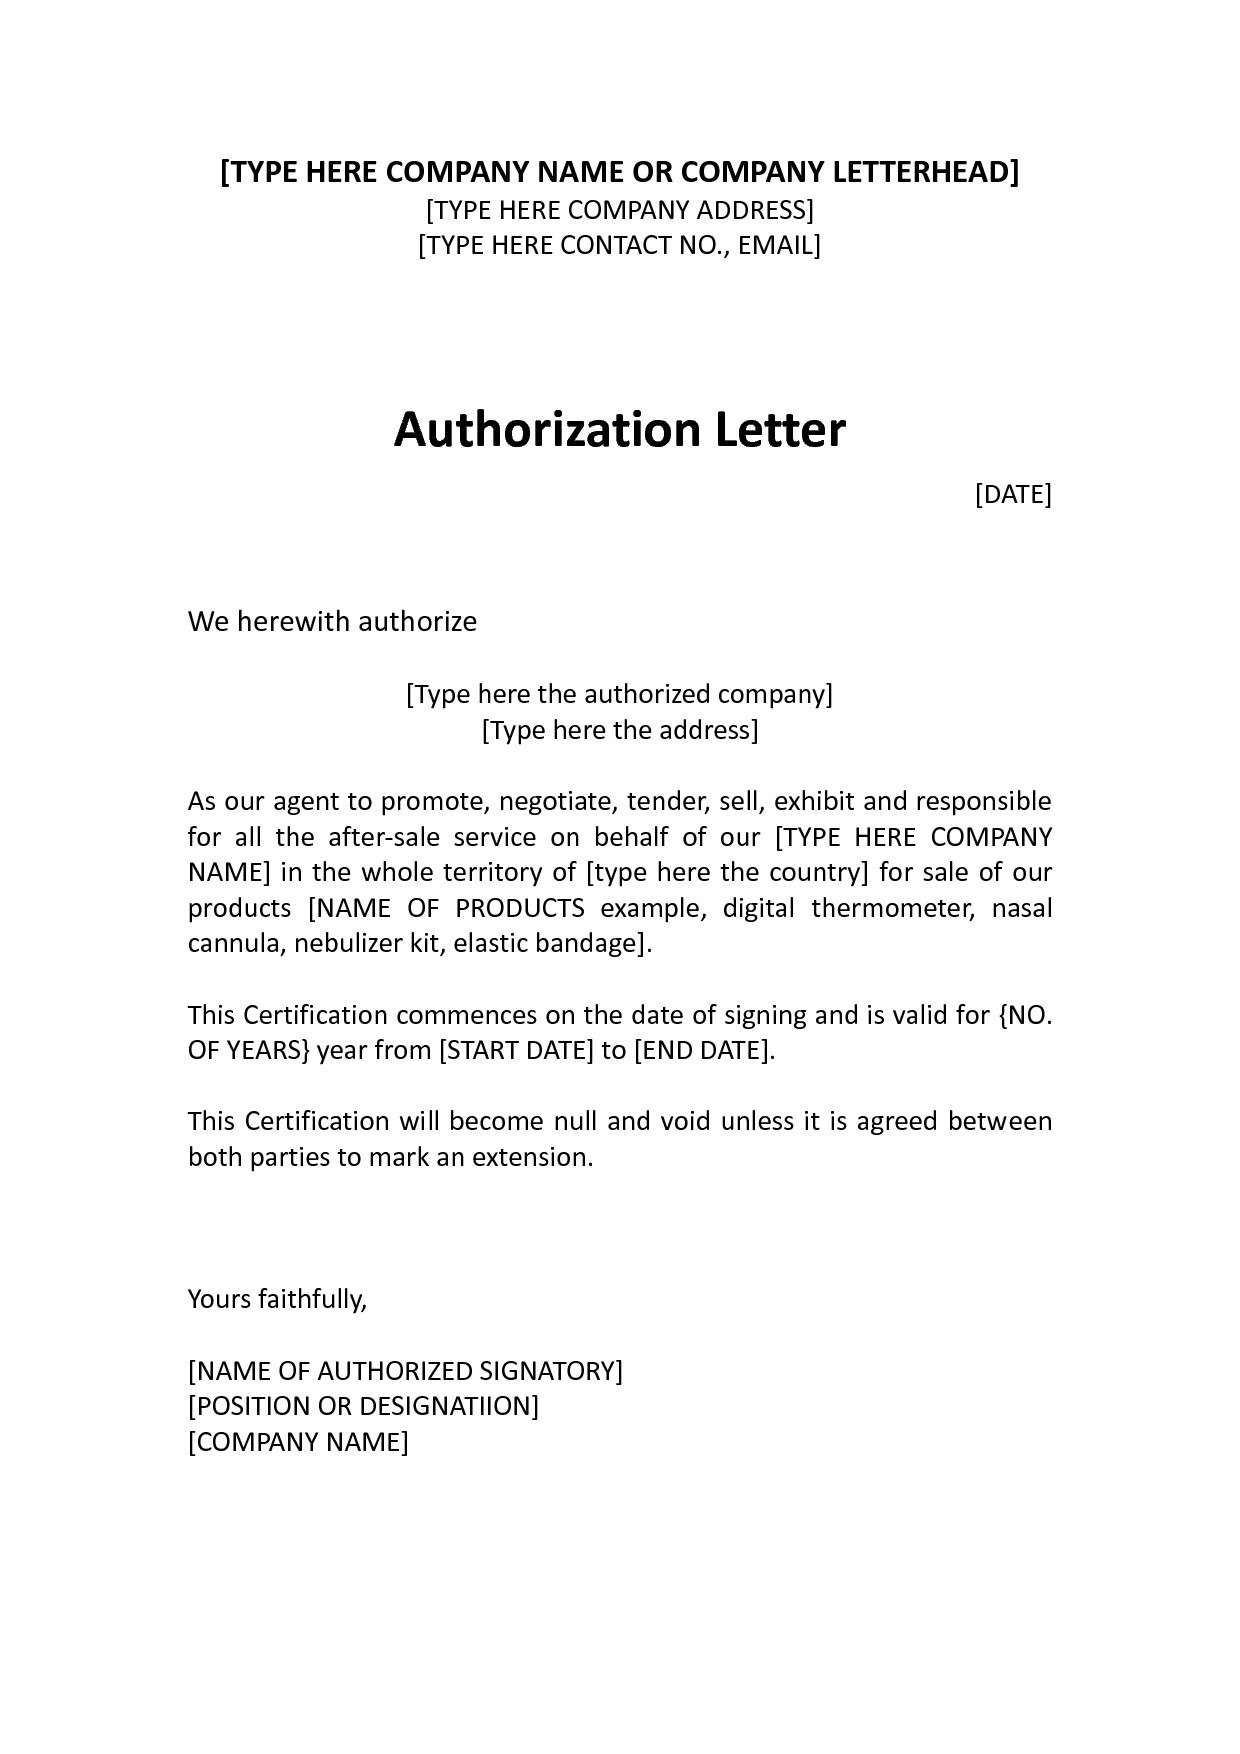 Authorization Letter Format PDF